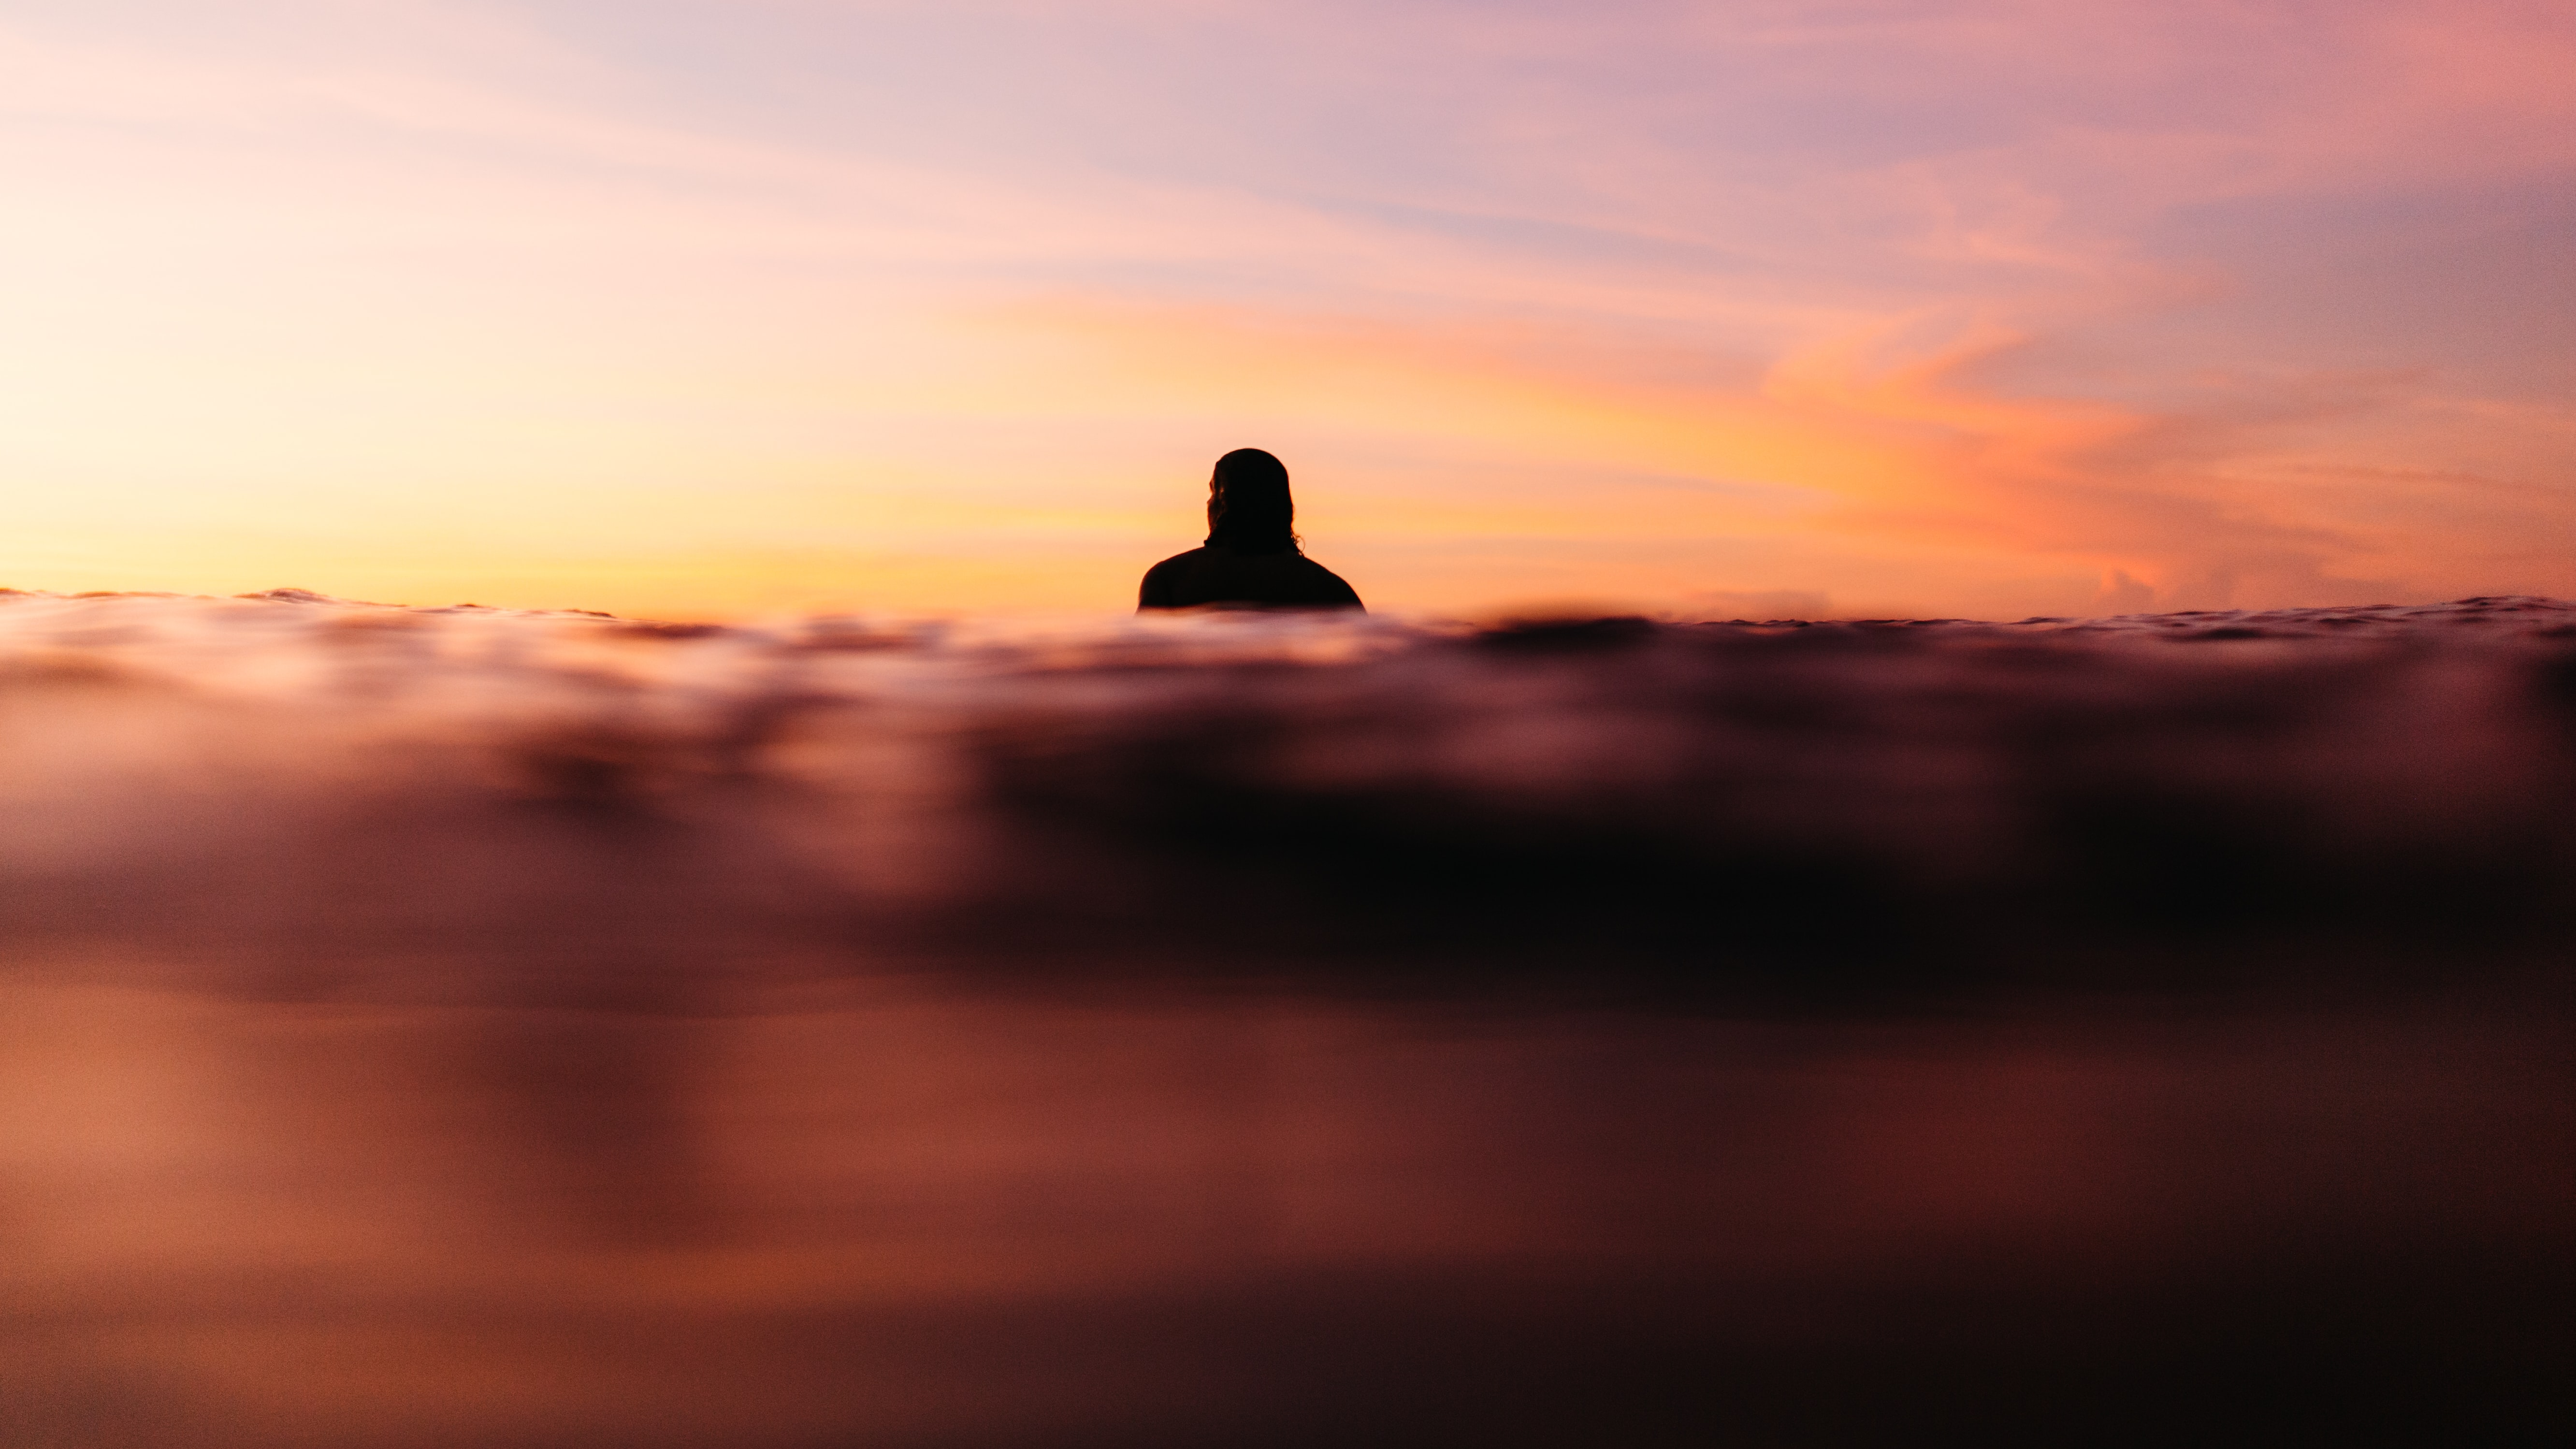 silhouette photo of person in body of water